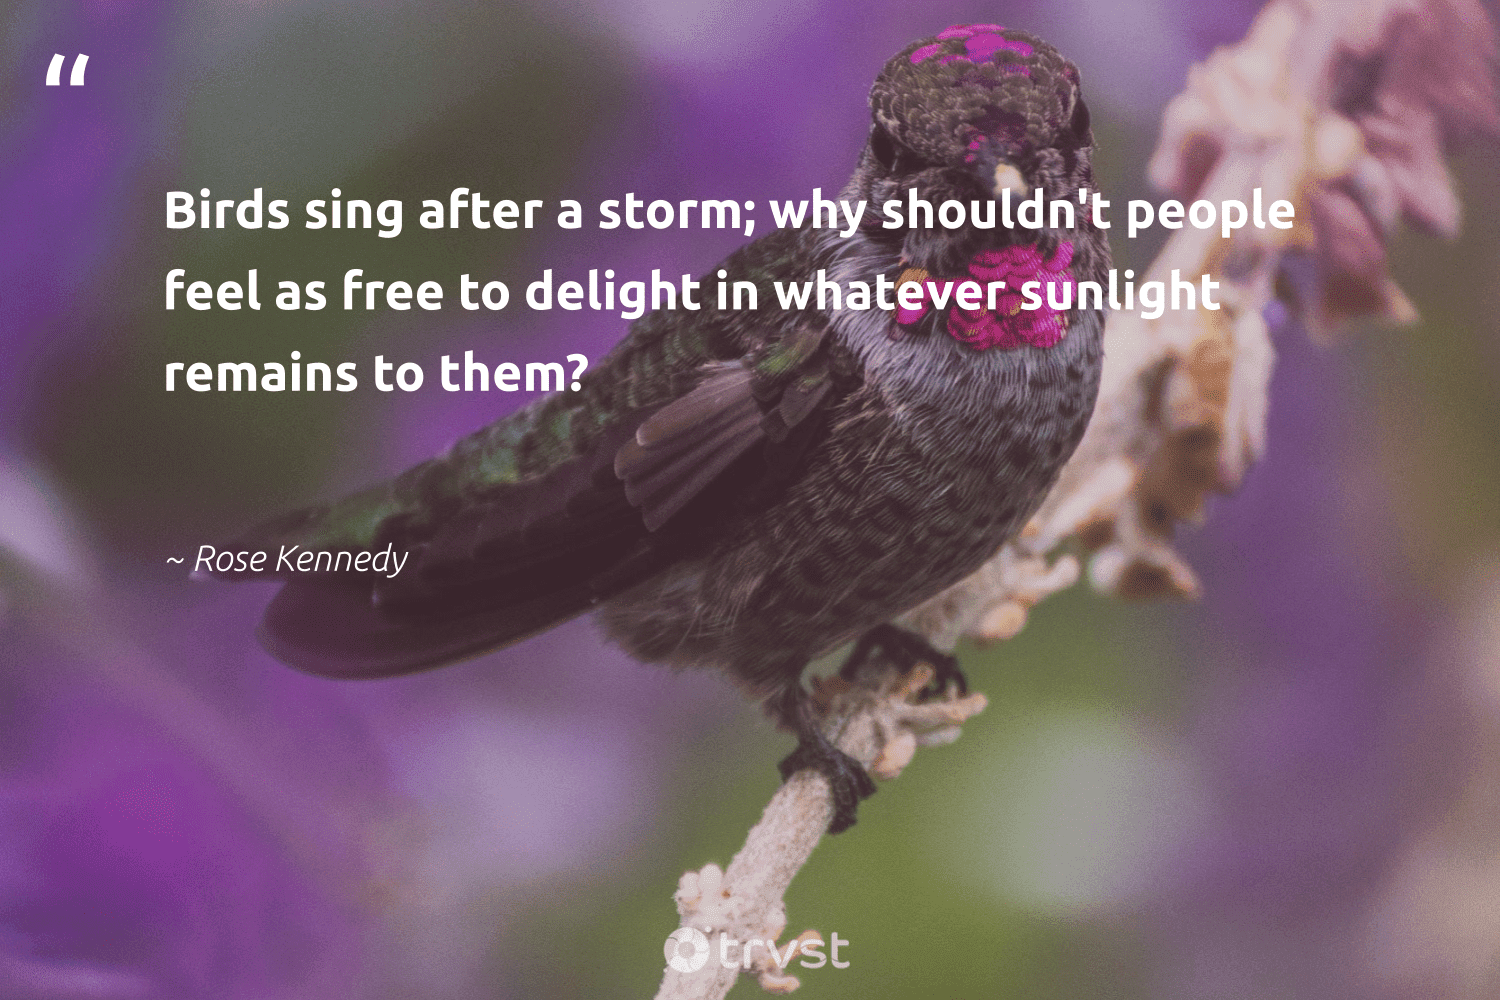 """""""Birds sing after a storm; why shouldn't people feel as free to delight in whatever sunlight remains to them?""""  - Rose Kennedy #trvst #quotes #birds #bird #biology #dogood #geology #beinspired #forscience #dosomething #natural #collectiveaction"""